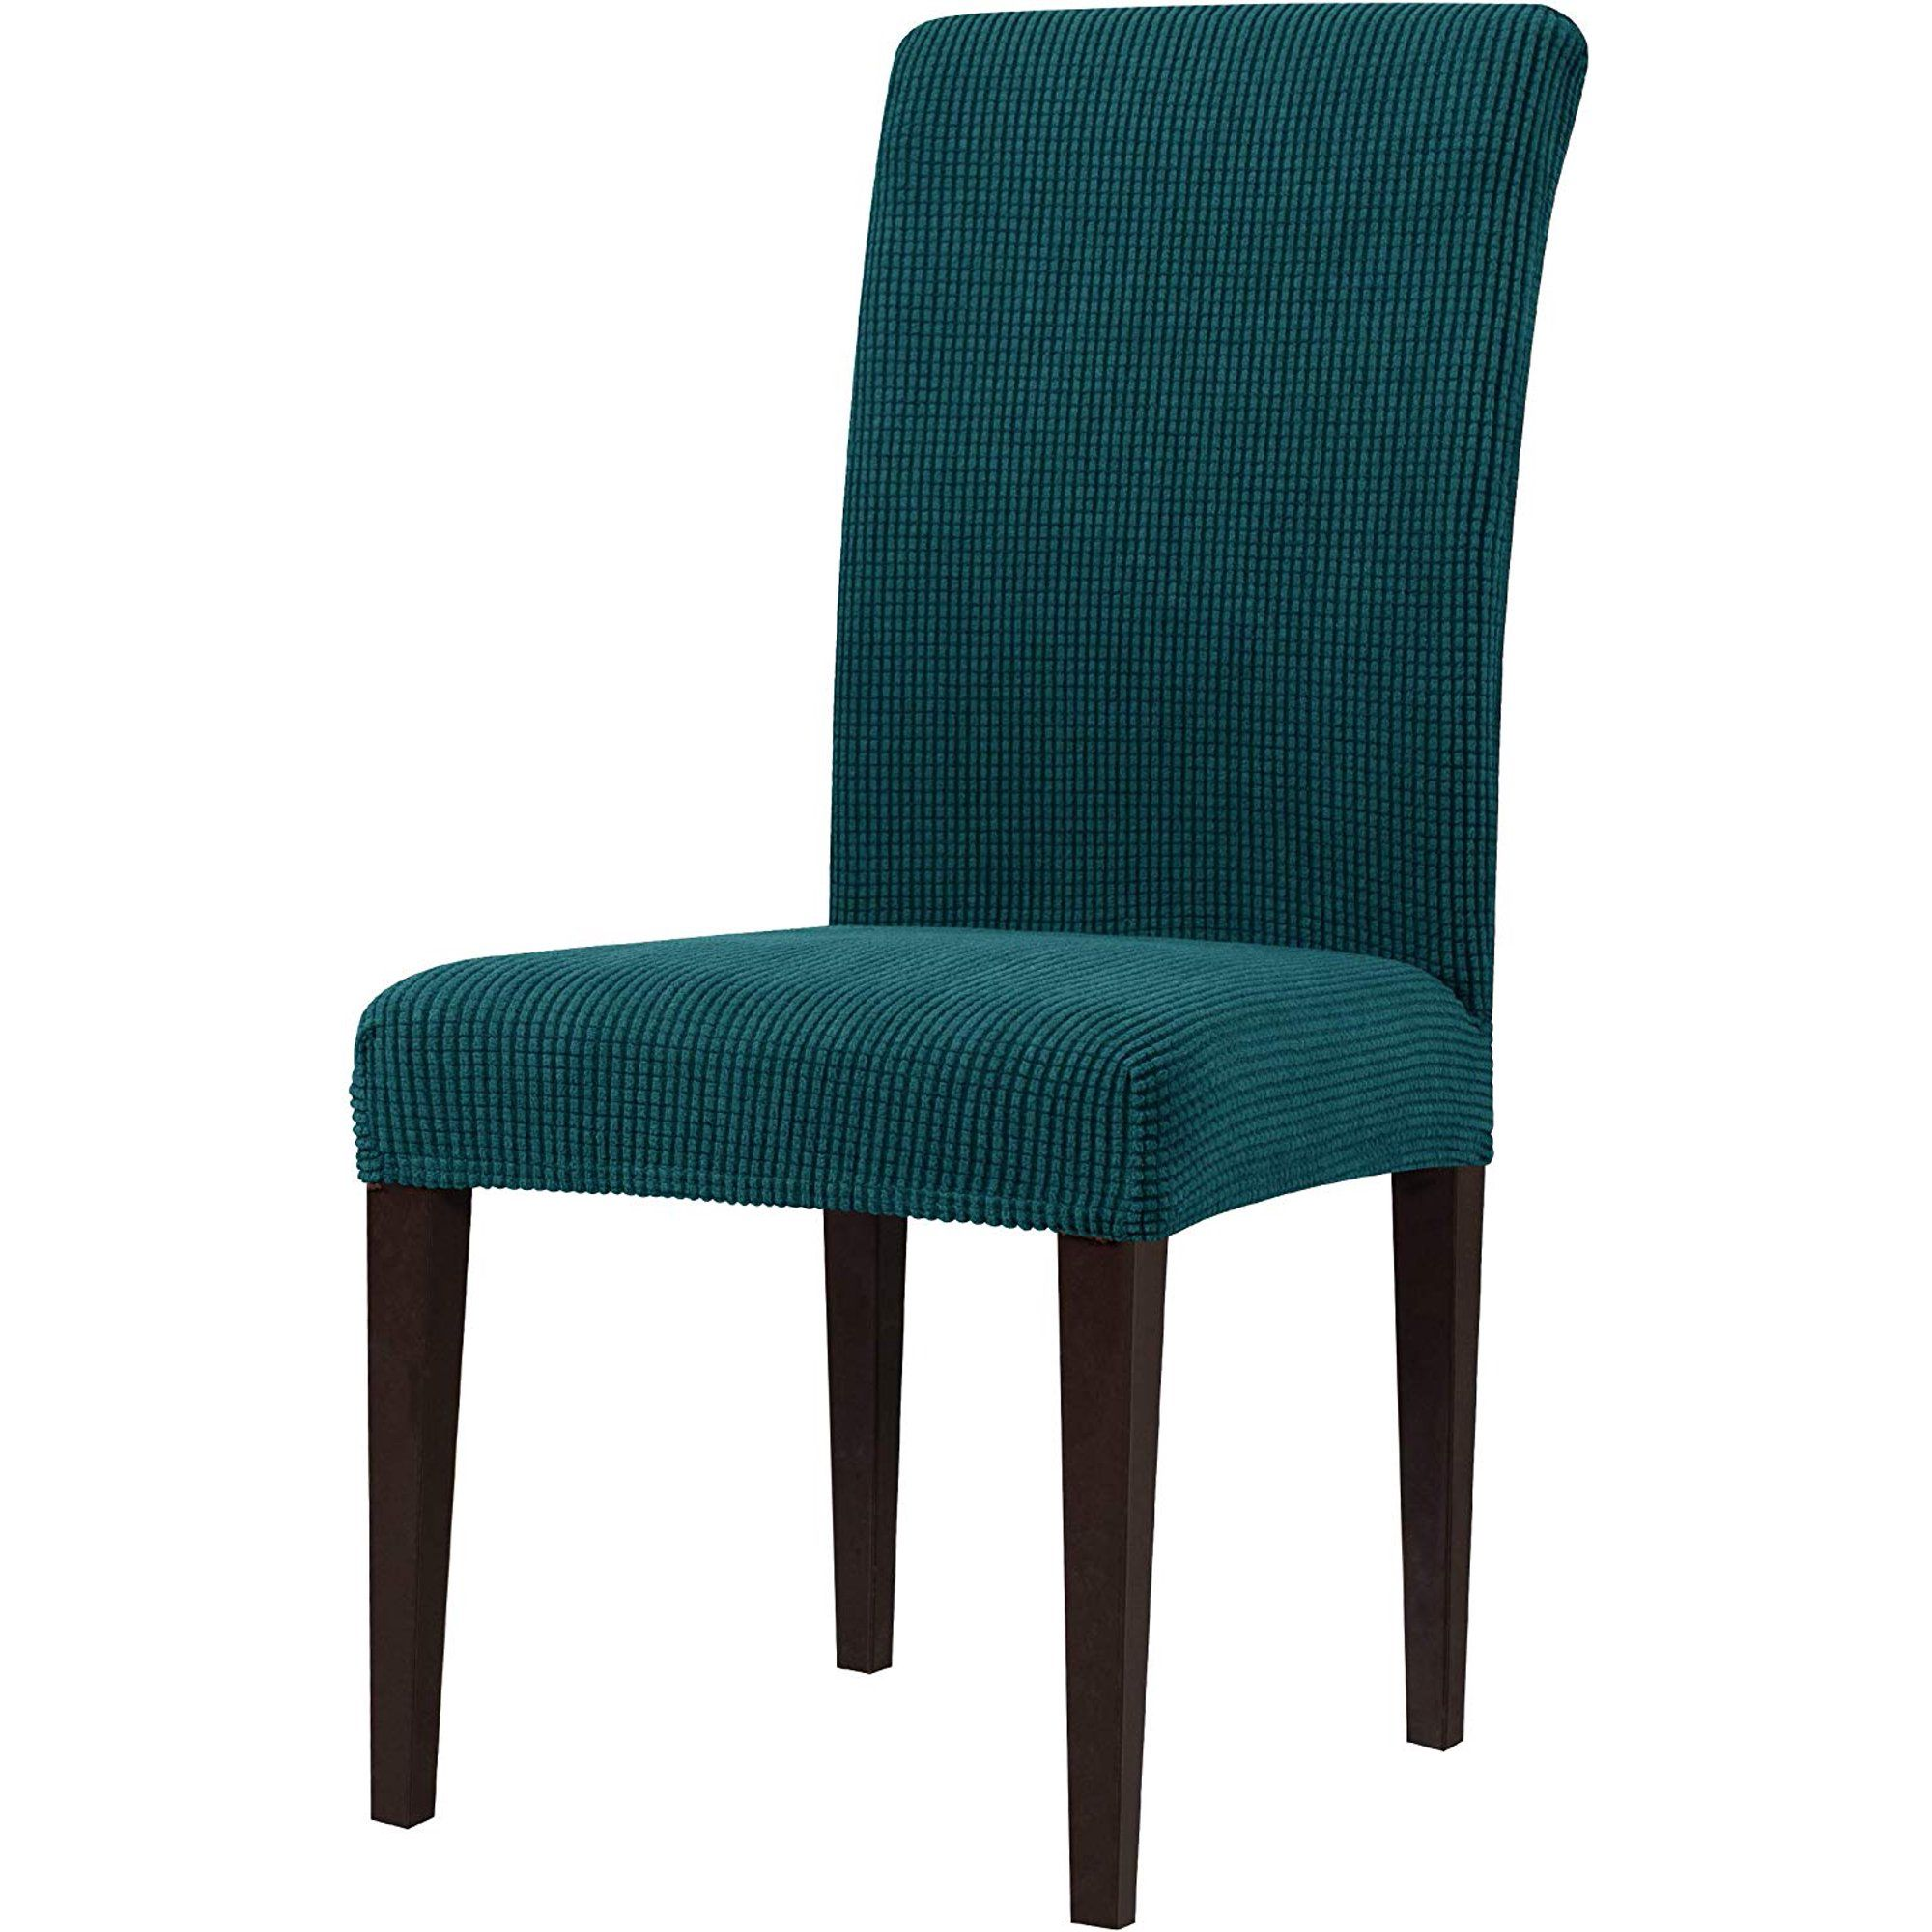 Subrtex Stretch Textured Grid Dining Chair Slipcover (Set